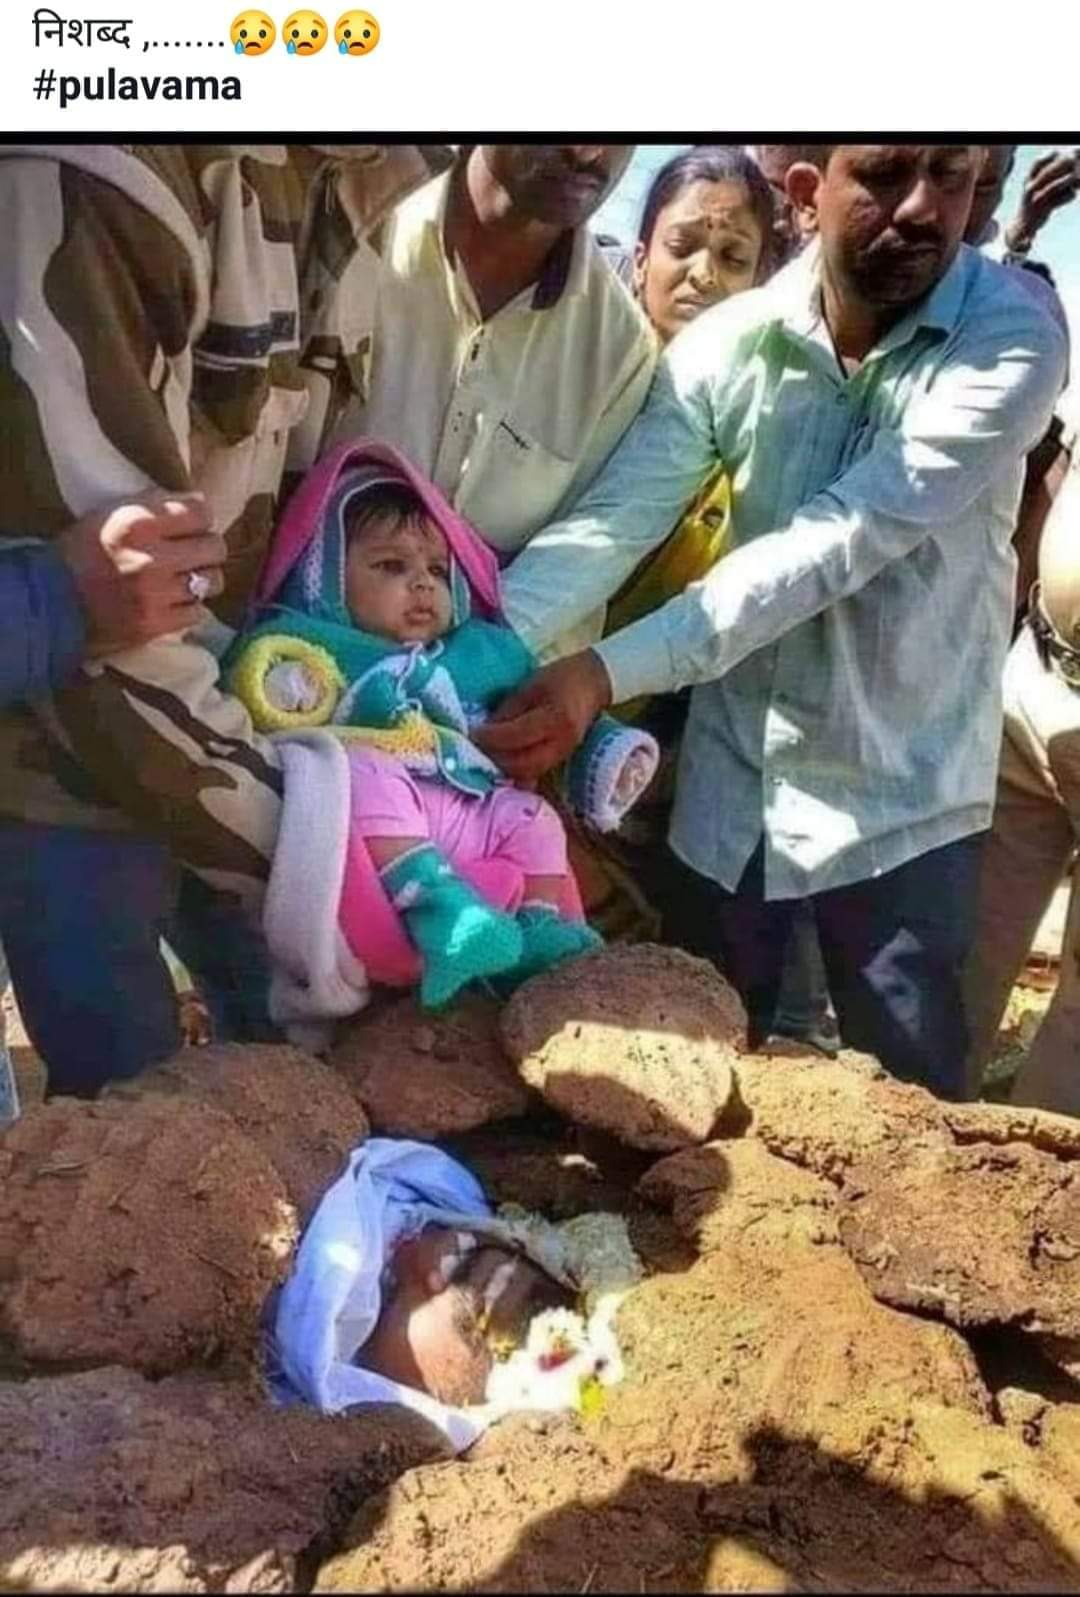 20190214 Murdered Indian Soldier with baby